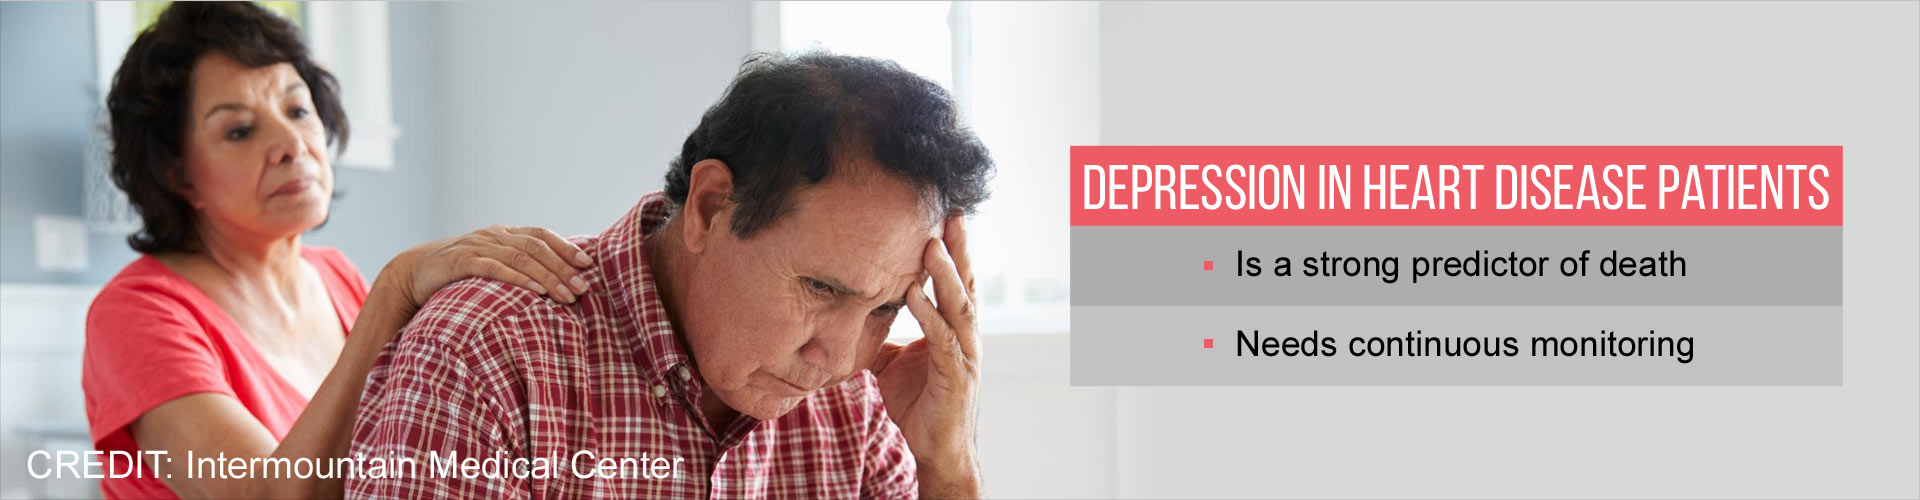 Depression After Heart Disease Diagnosis Increases Risk of Death